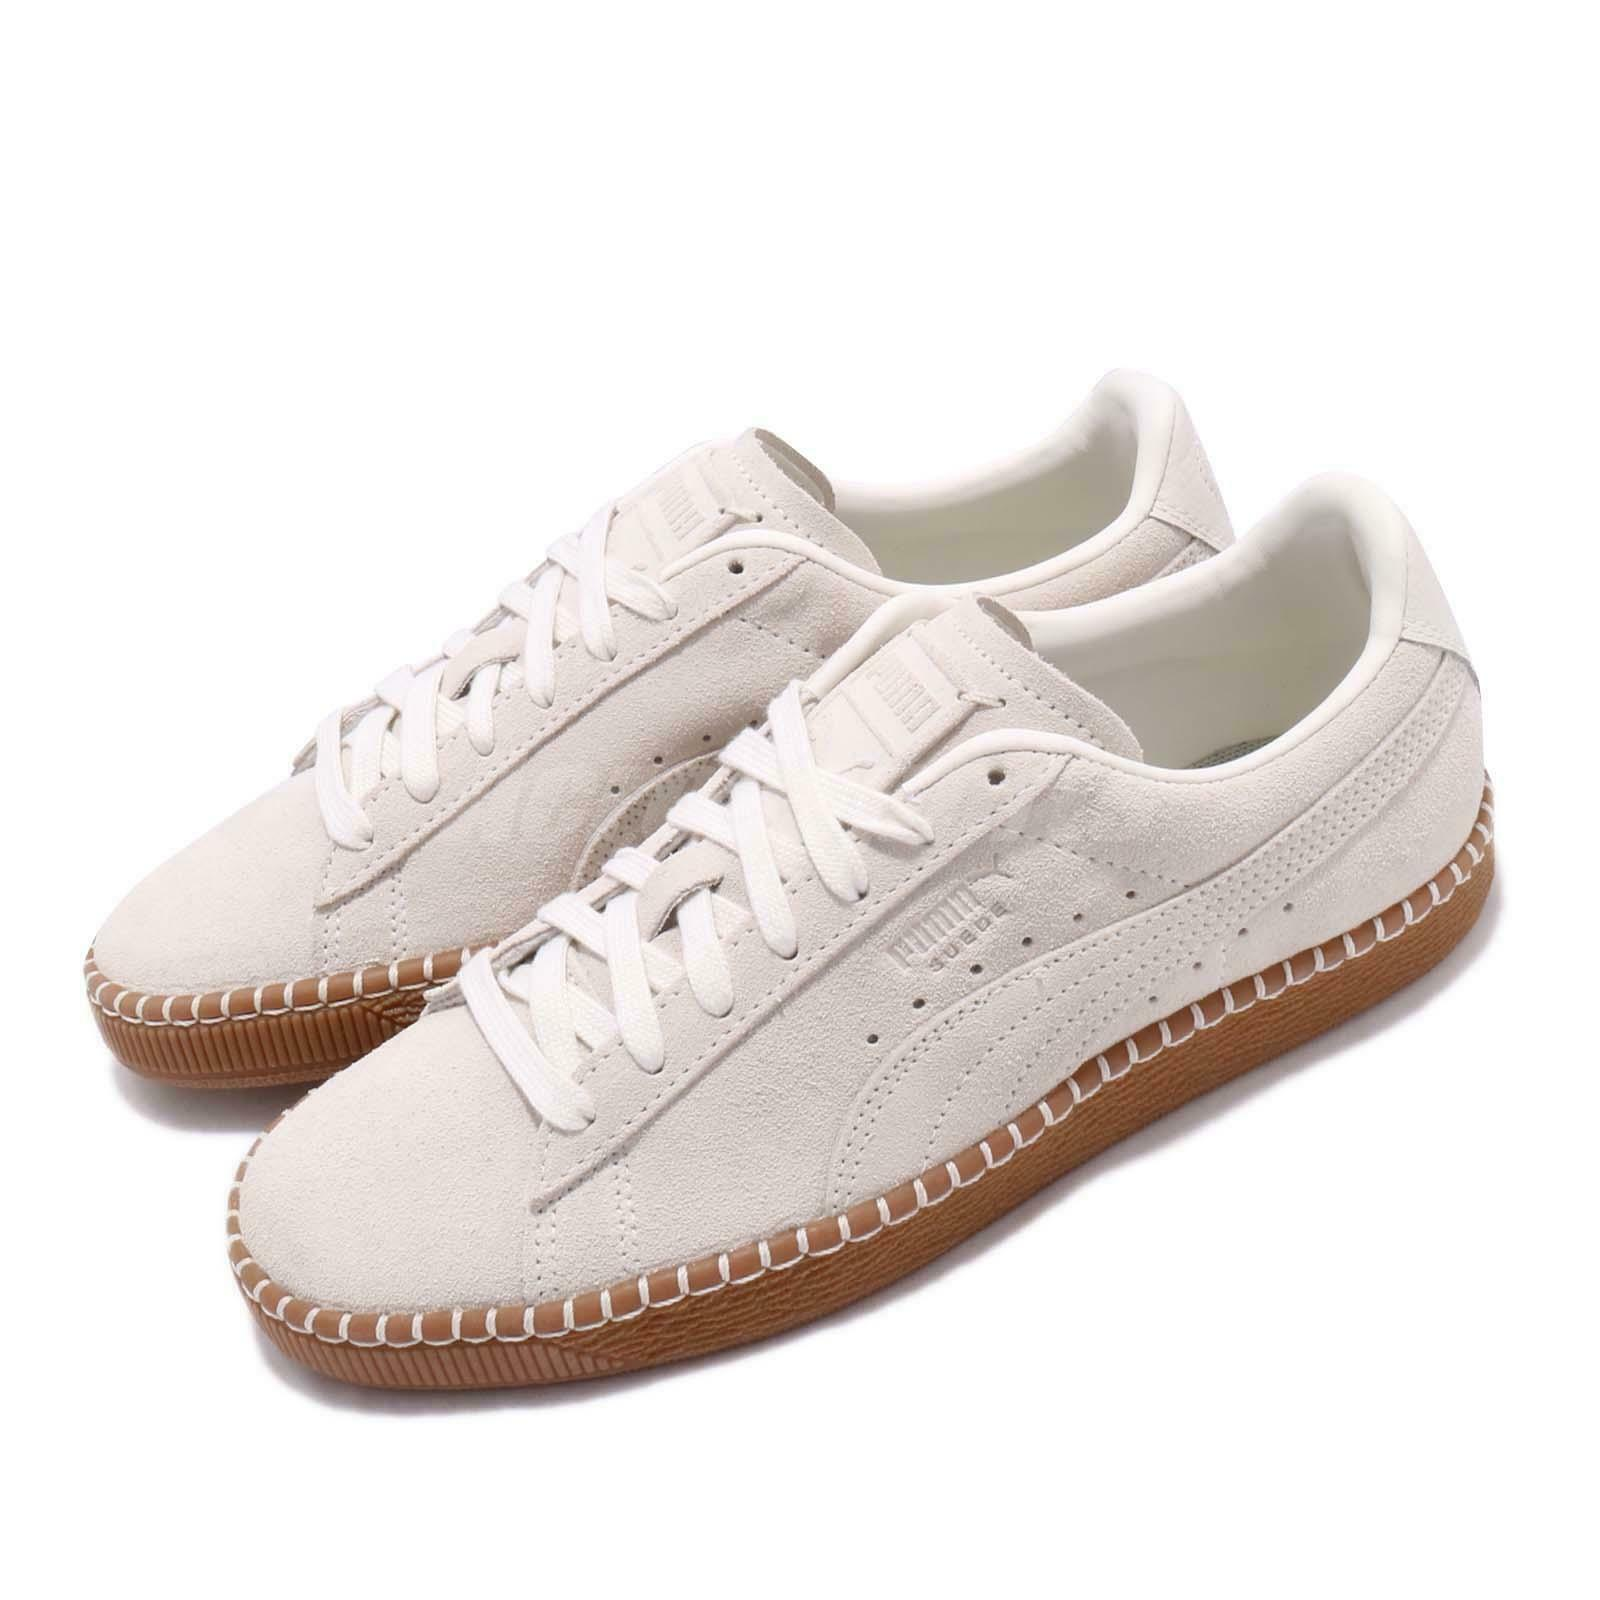 Puma Suede Classic Blanket Stitch Whisper blanco Gum Men mujer zapatos 368903-03